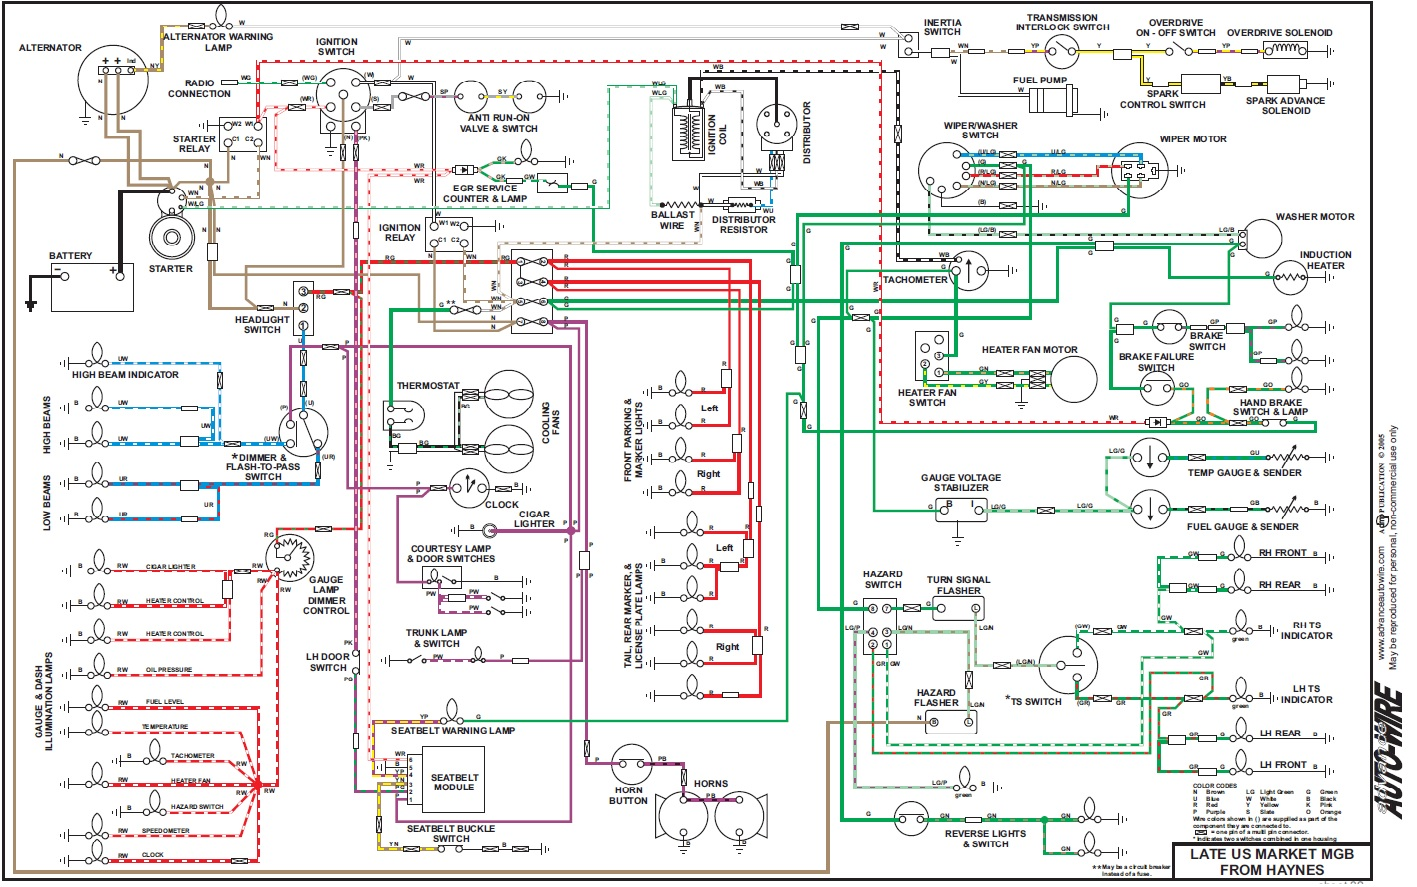 Mgb Wiring Diagram : View from a bus the rule